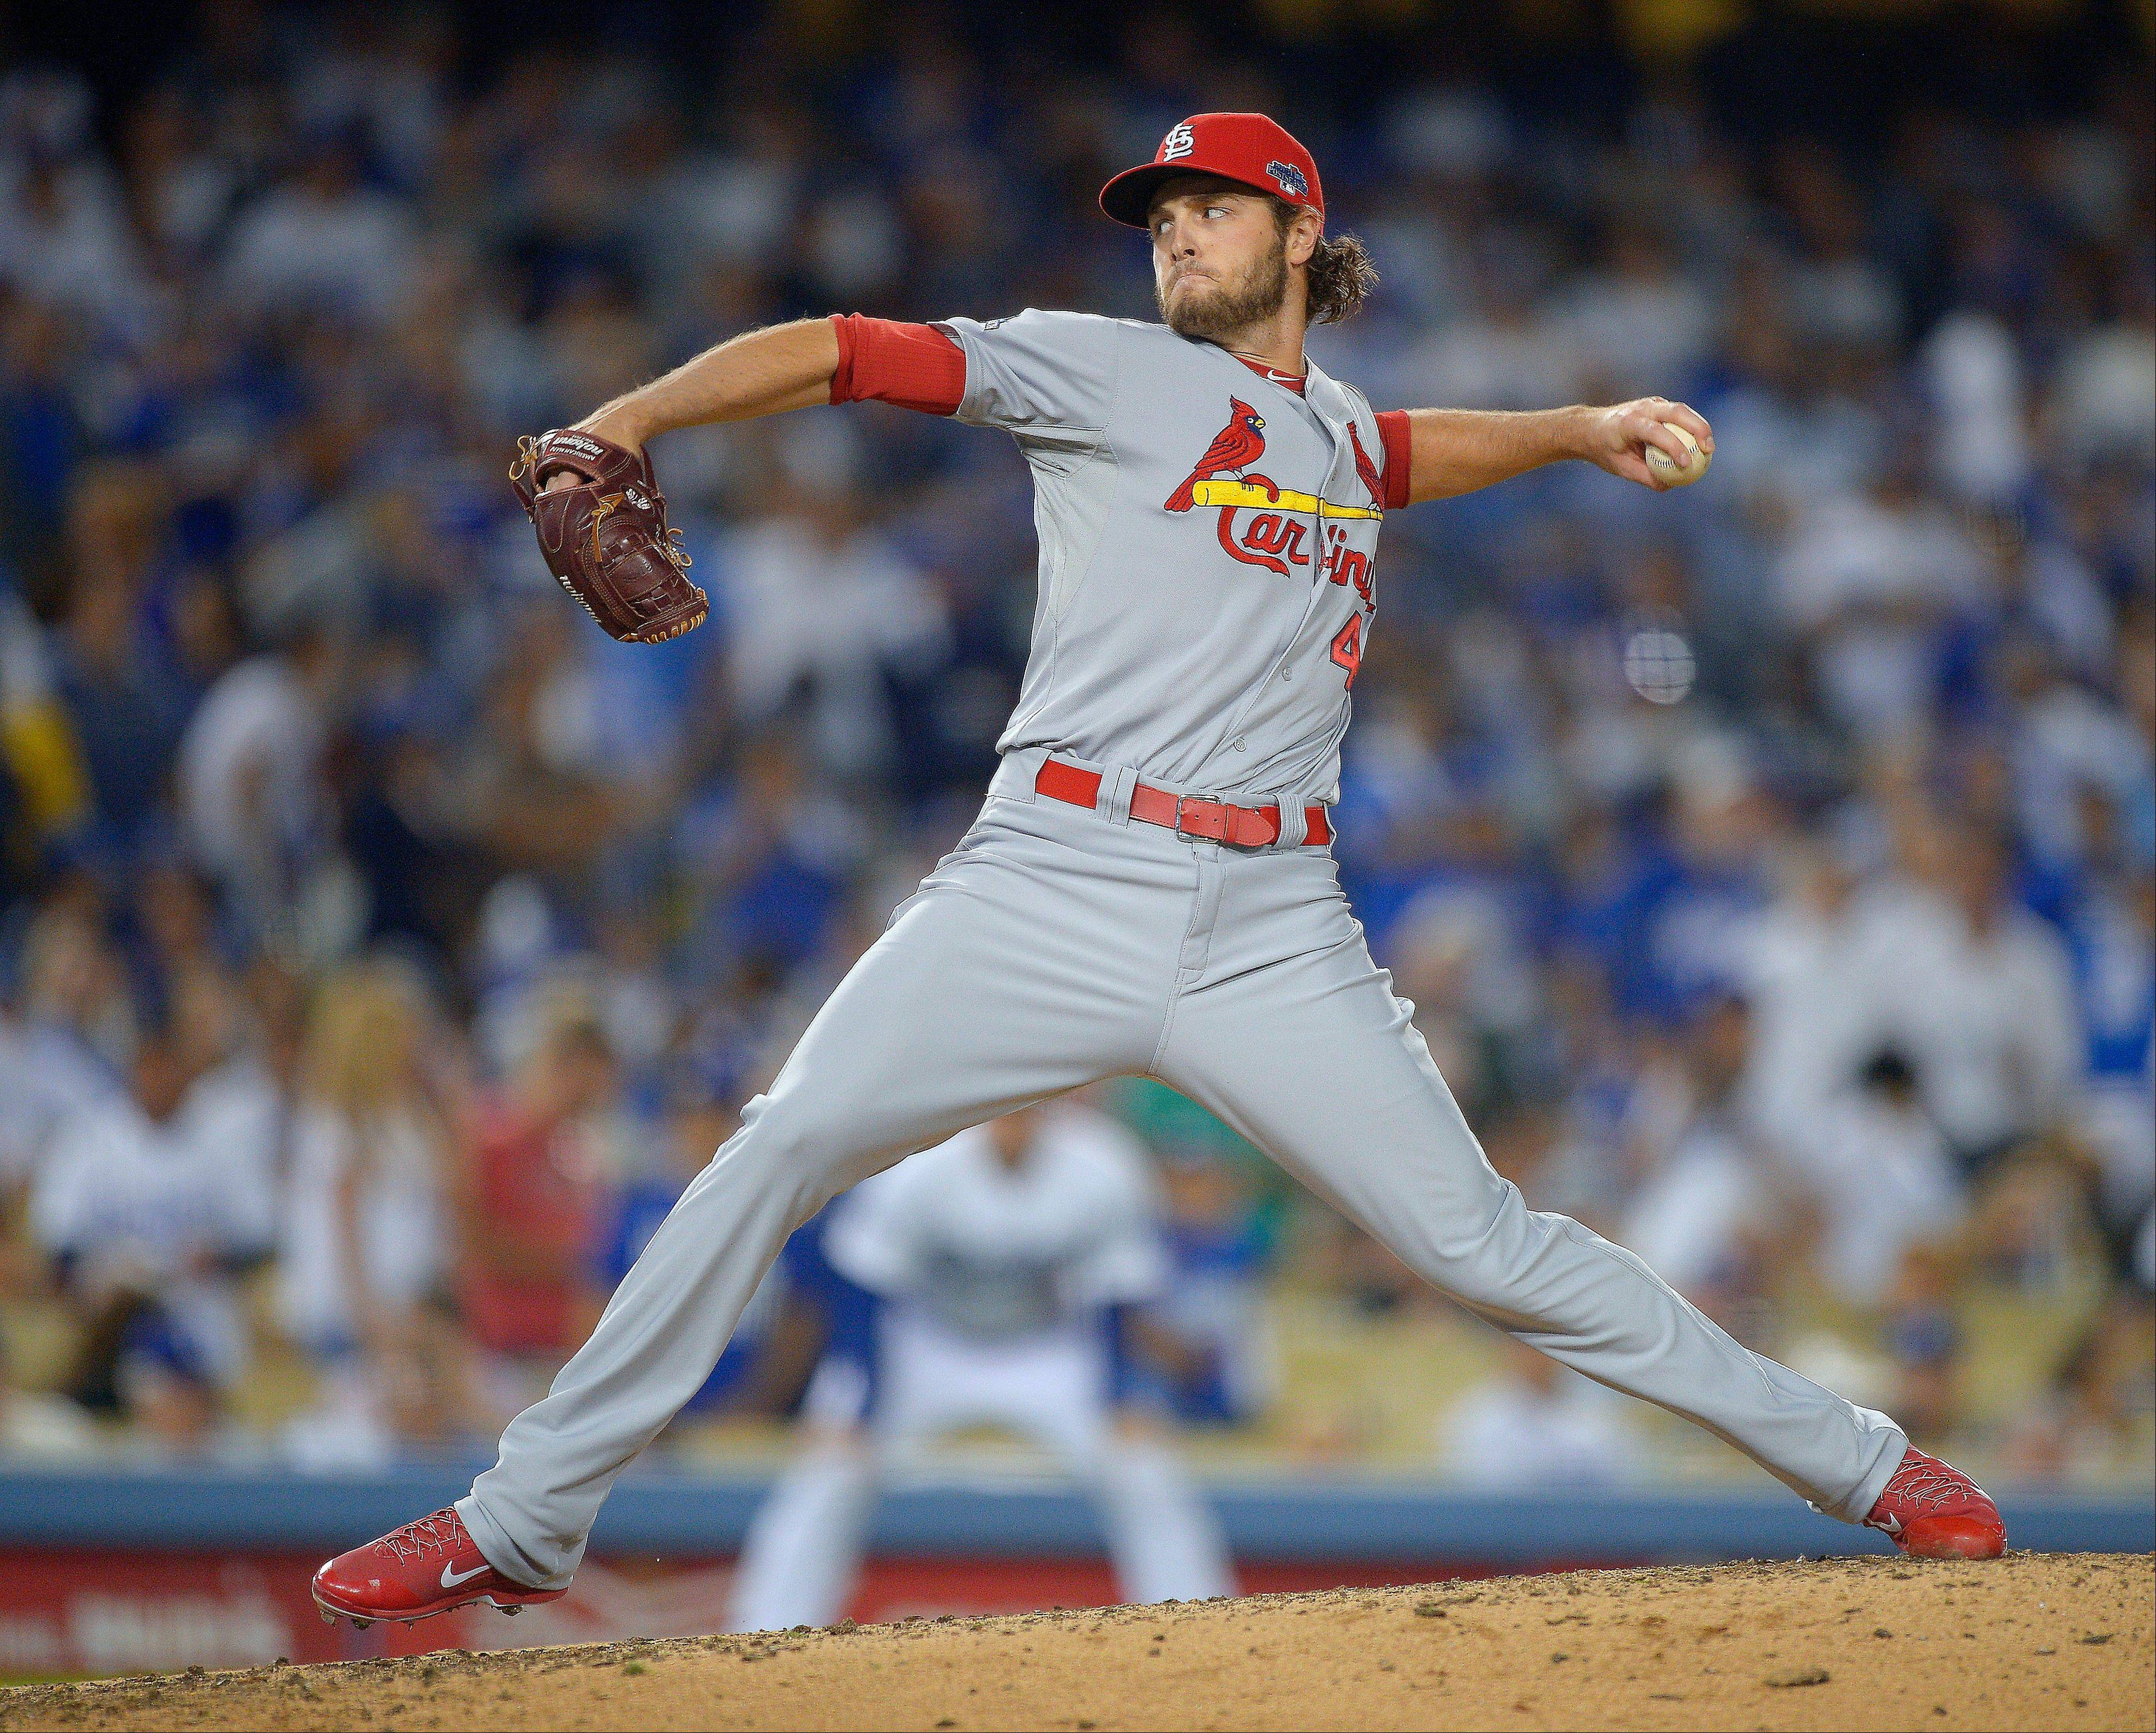 Cardinals relief pitcher Kevin Siegrist throws during the eighth inning of Game 3.